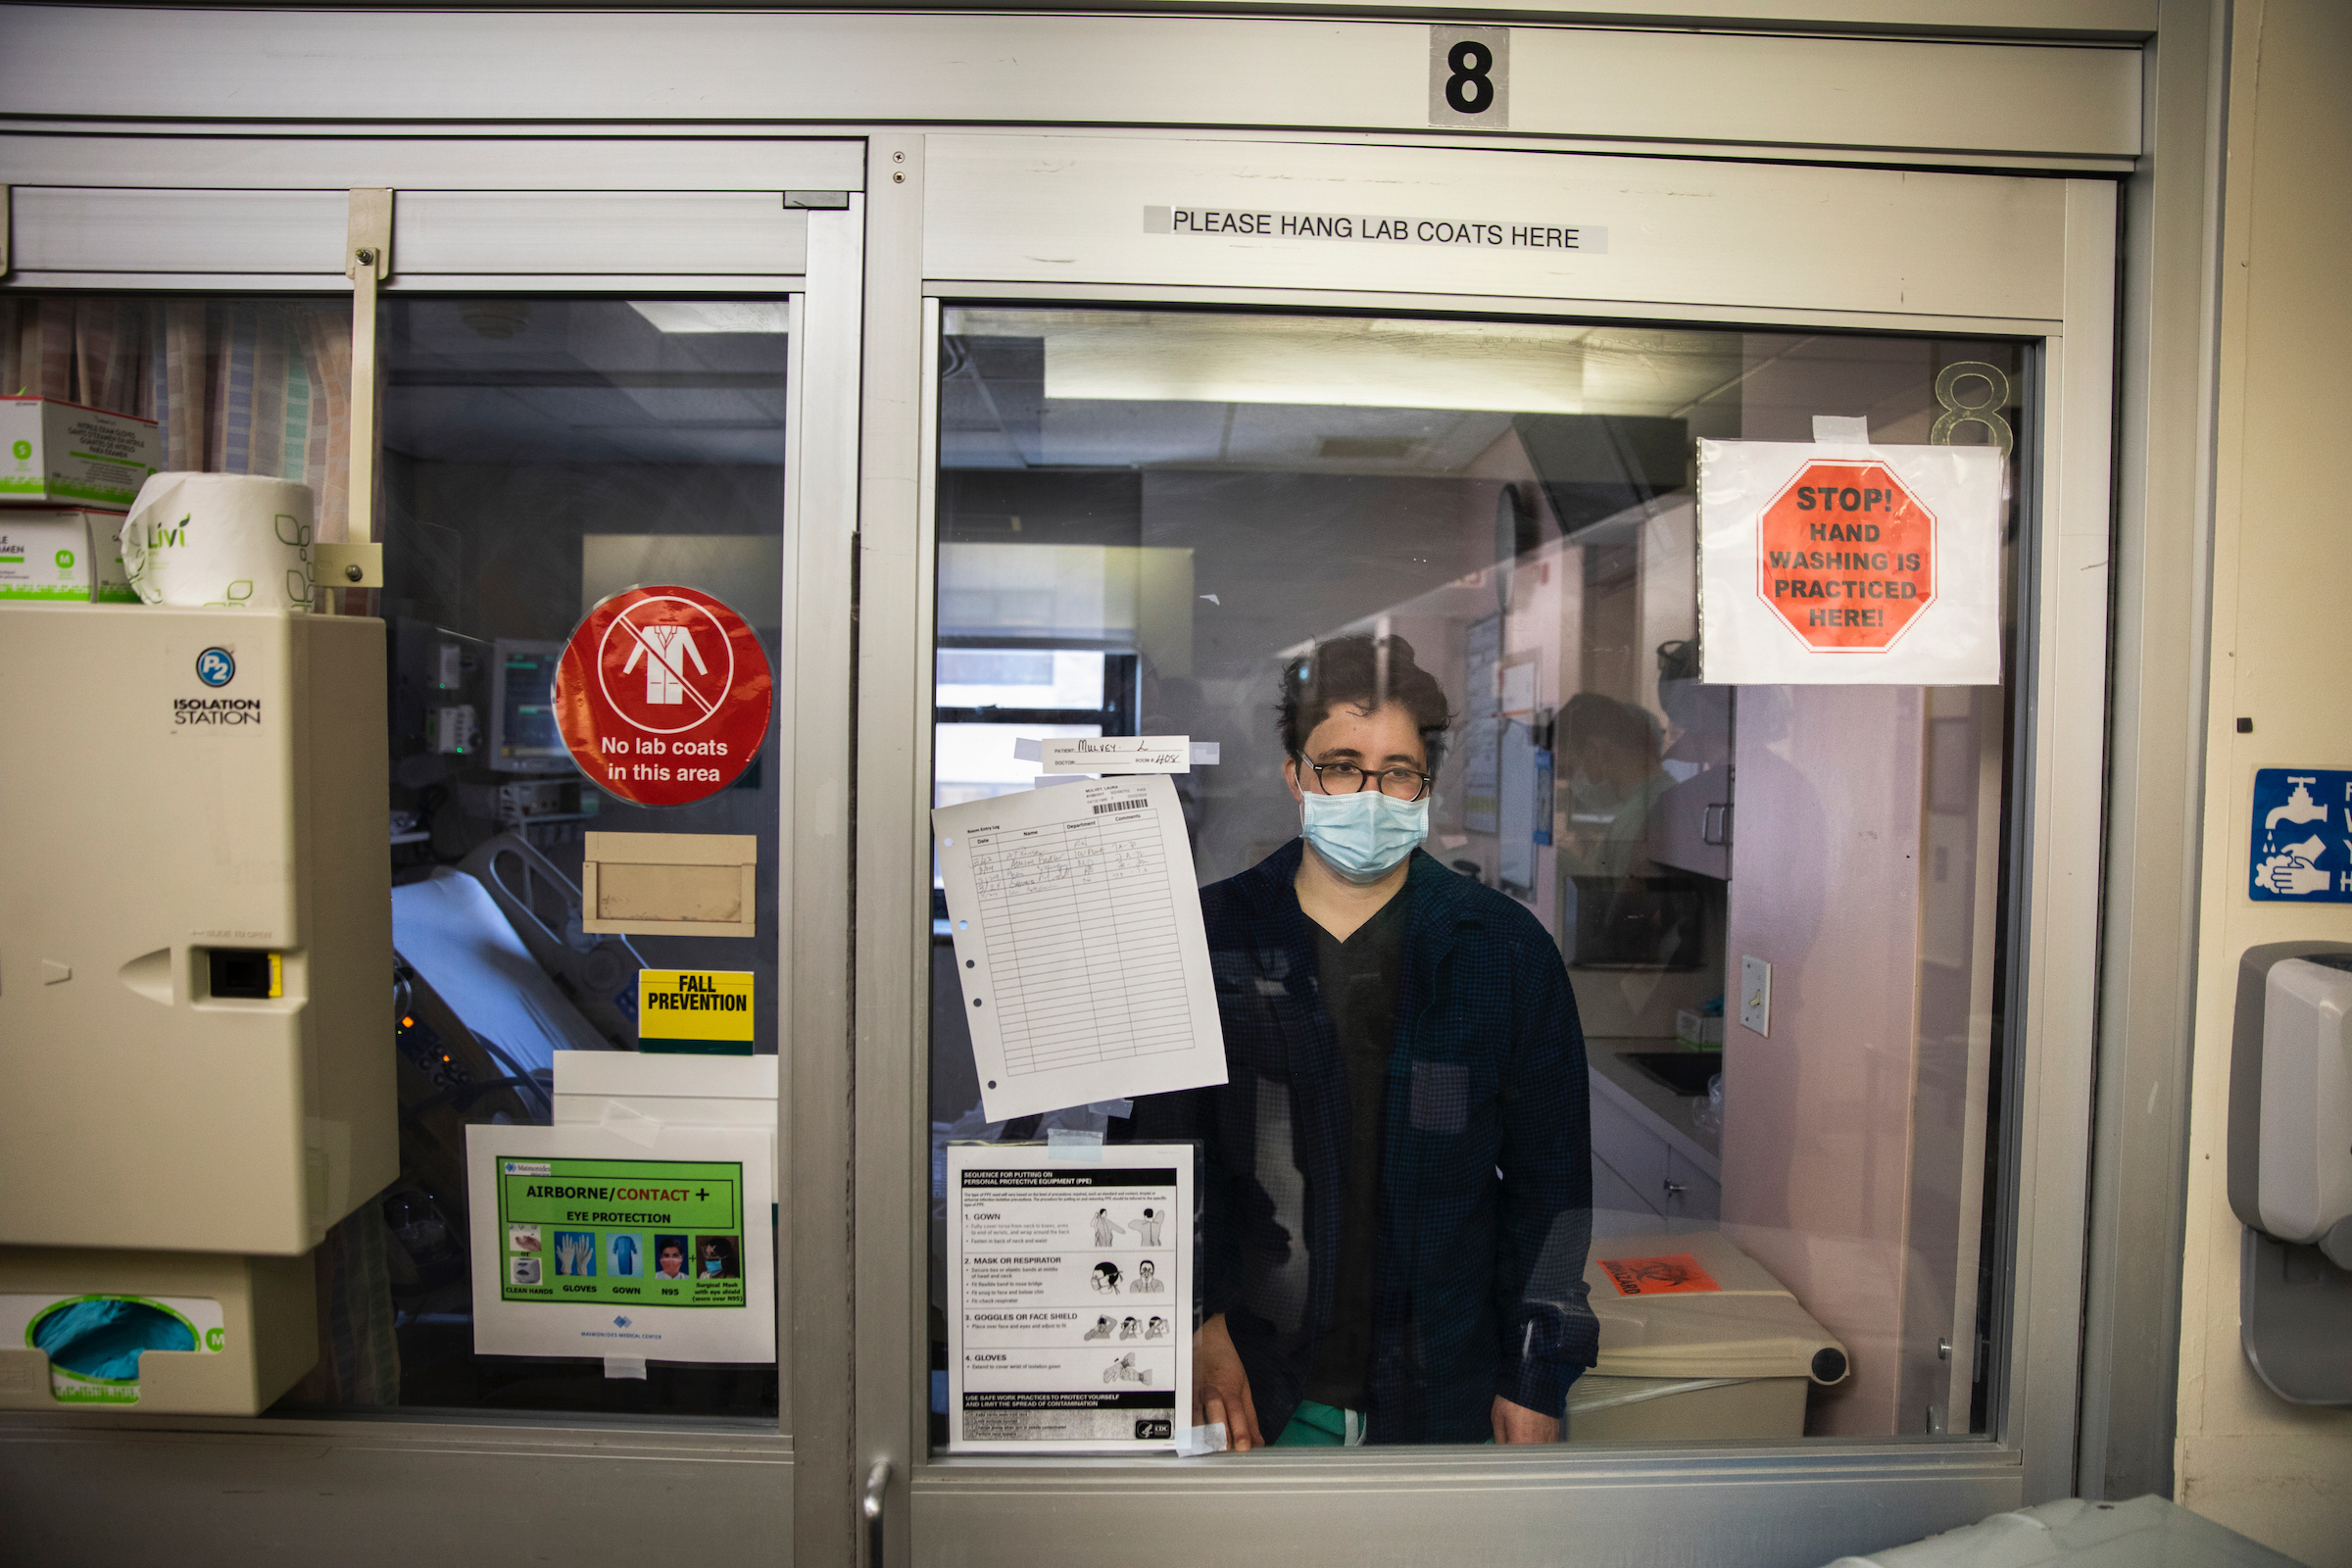 It's not easy being a patient, especially in your own hospital.  Dr. Laura Mulvey, who practices emergency medicine, in her isolation unit in the ICU at Maimonides Medical Center in Brooklyn on March 26, 2020.